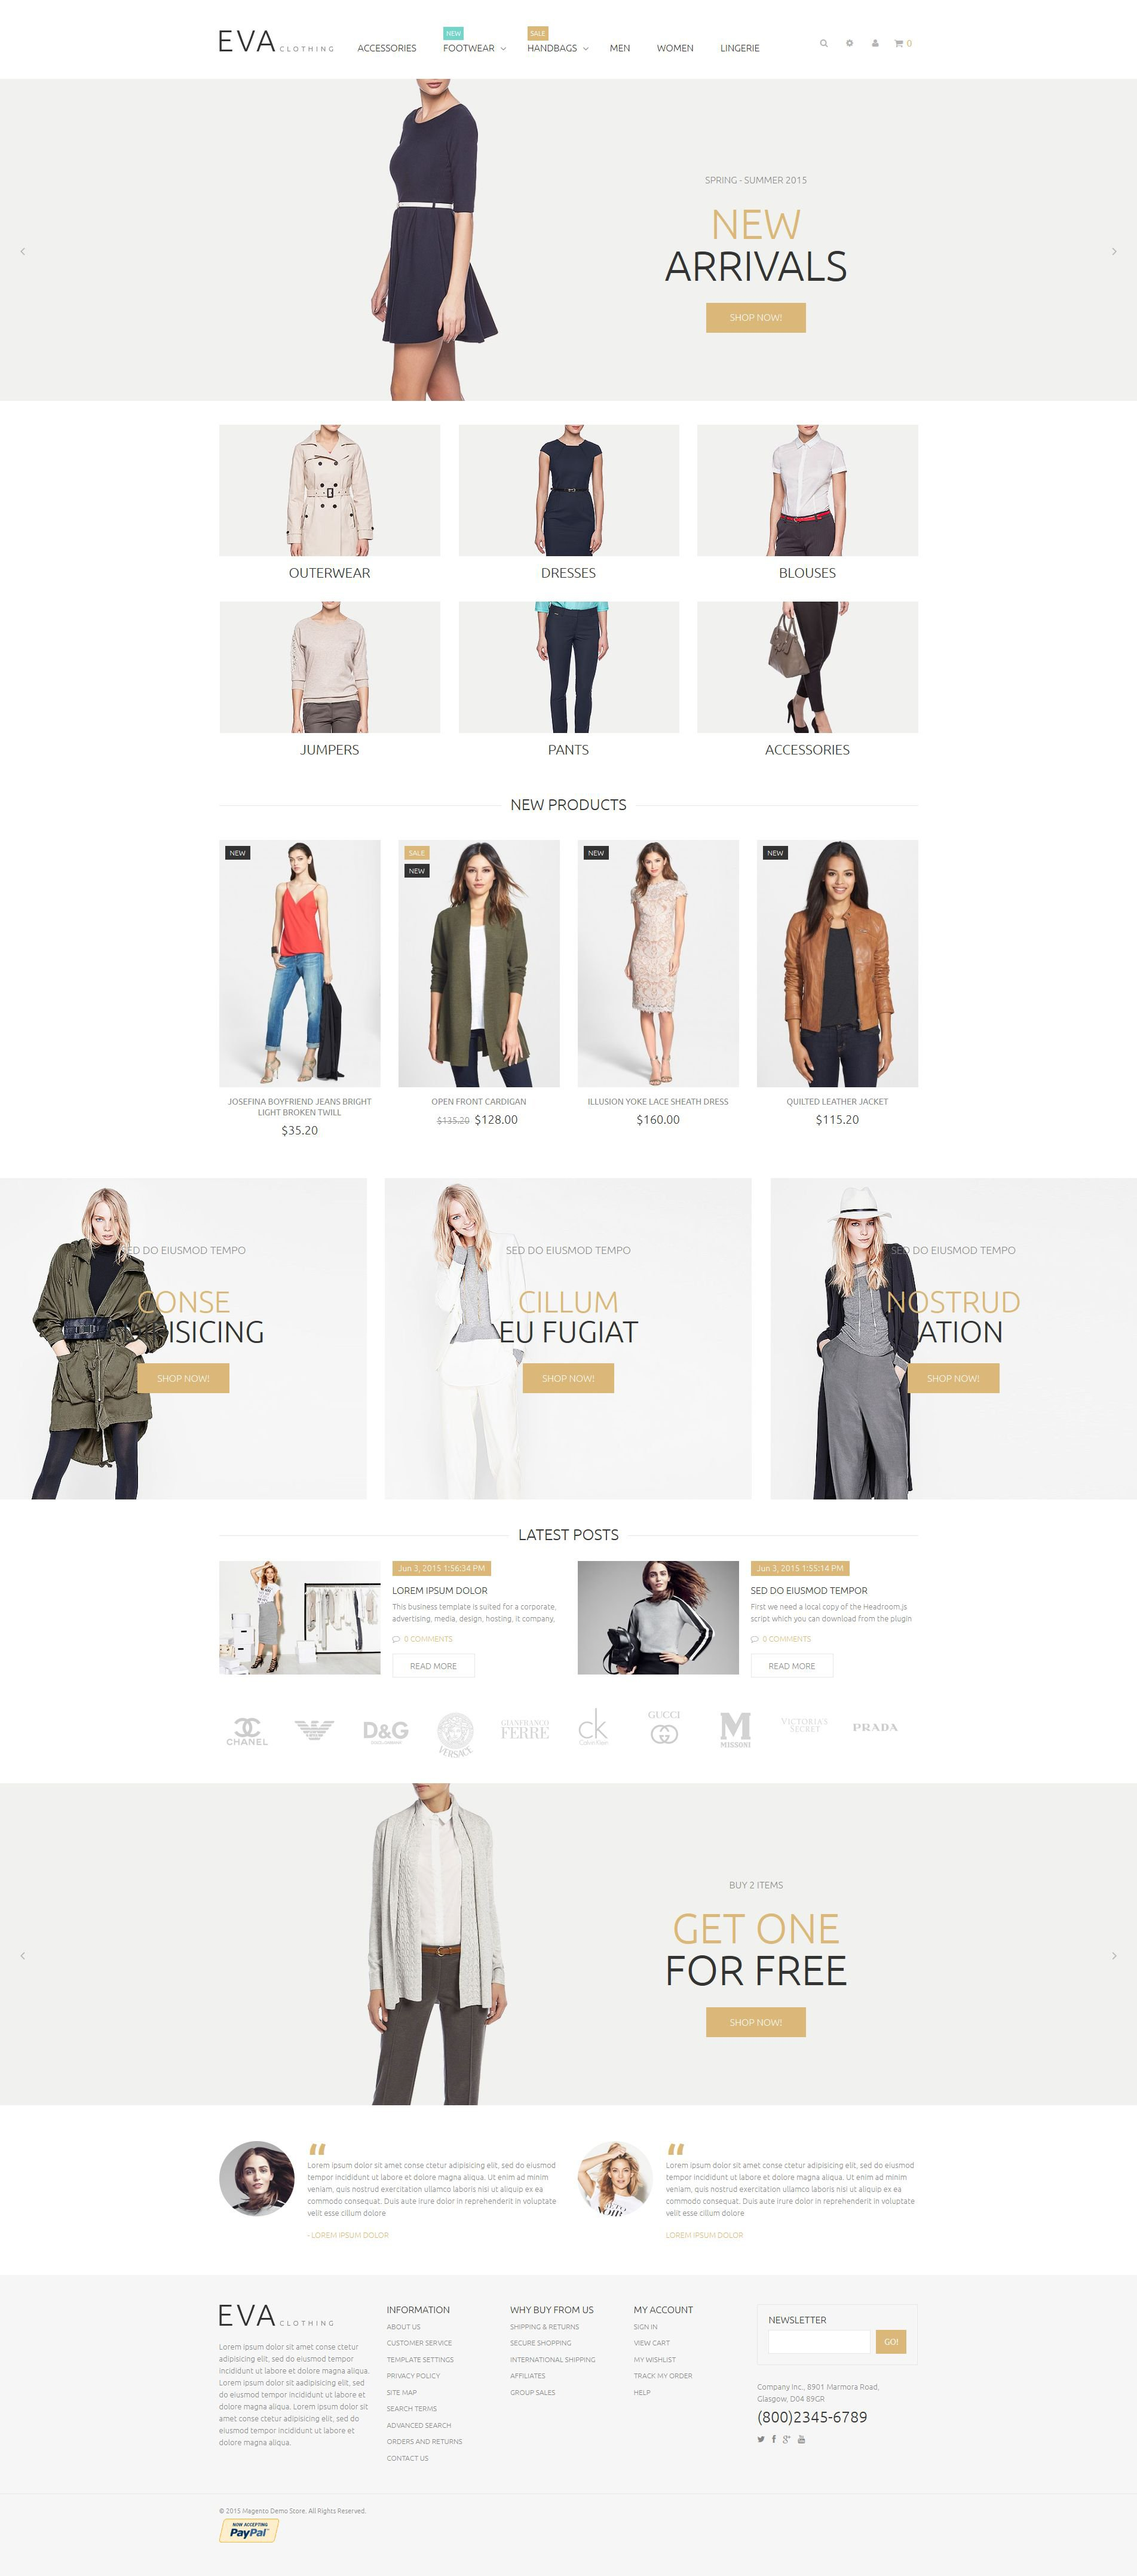 The Eva Clothes Magento Design 53452, one of the best Magento themes of its kind (fashion, most popular), also known as eva clothes Magento template, wear Magento template, clothing Magento template, apparel Magento template, work Magento template, shoes Magento template, gloves Magento template, wear Magento template, Safety Boots WEAR footwear Magento template, shirts Magento template, protective Magento template, goggles Magento template, protective Magento template, eyewear and related with eva clothes, wear, clothing, apparel, work, shoes, gloves, wear, Safety Boots WEAR footwear, shirts, protective, goggles, protective, eyewear, etc.